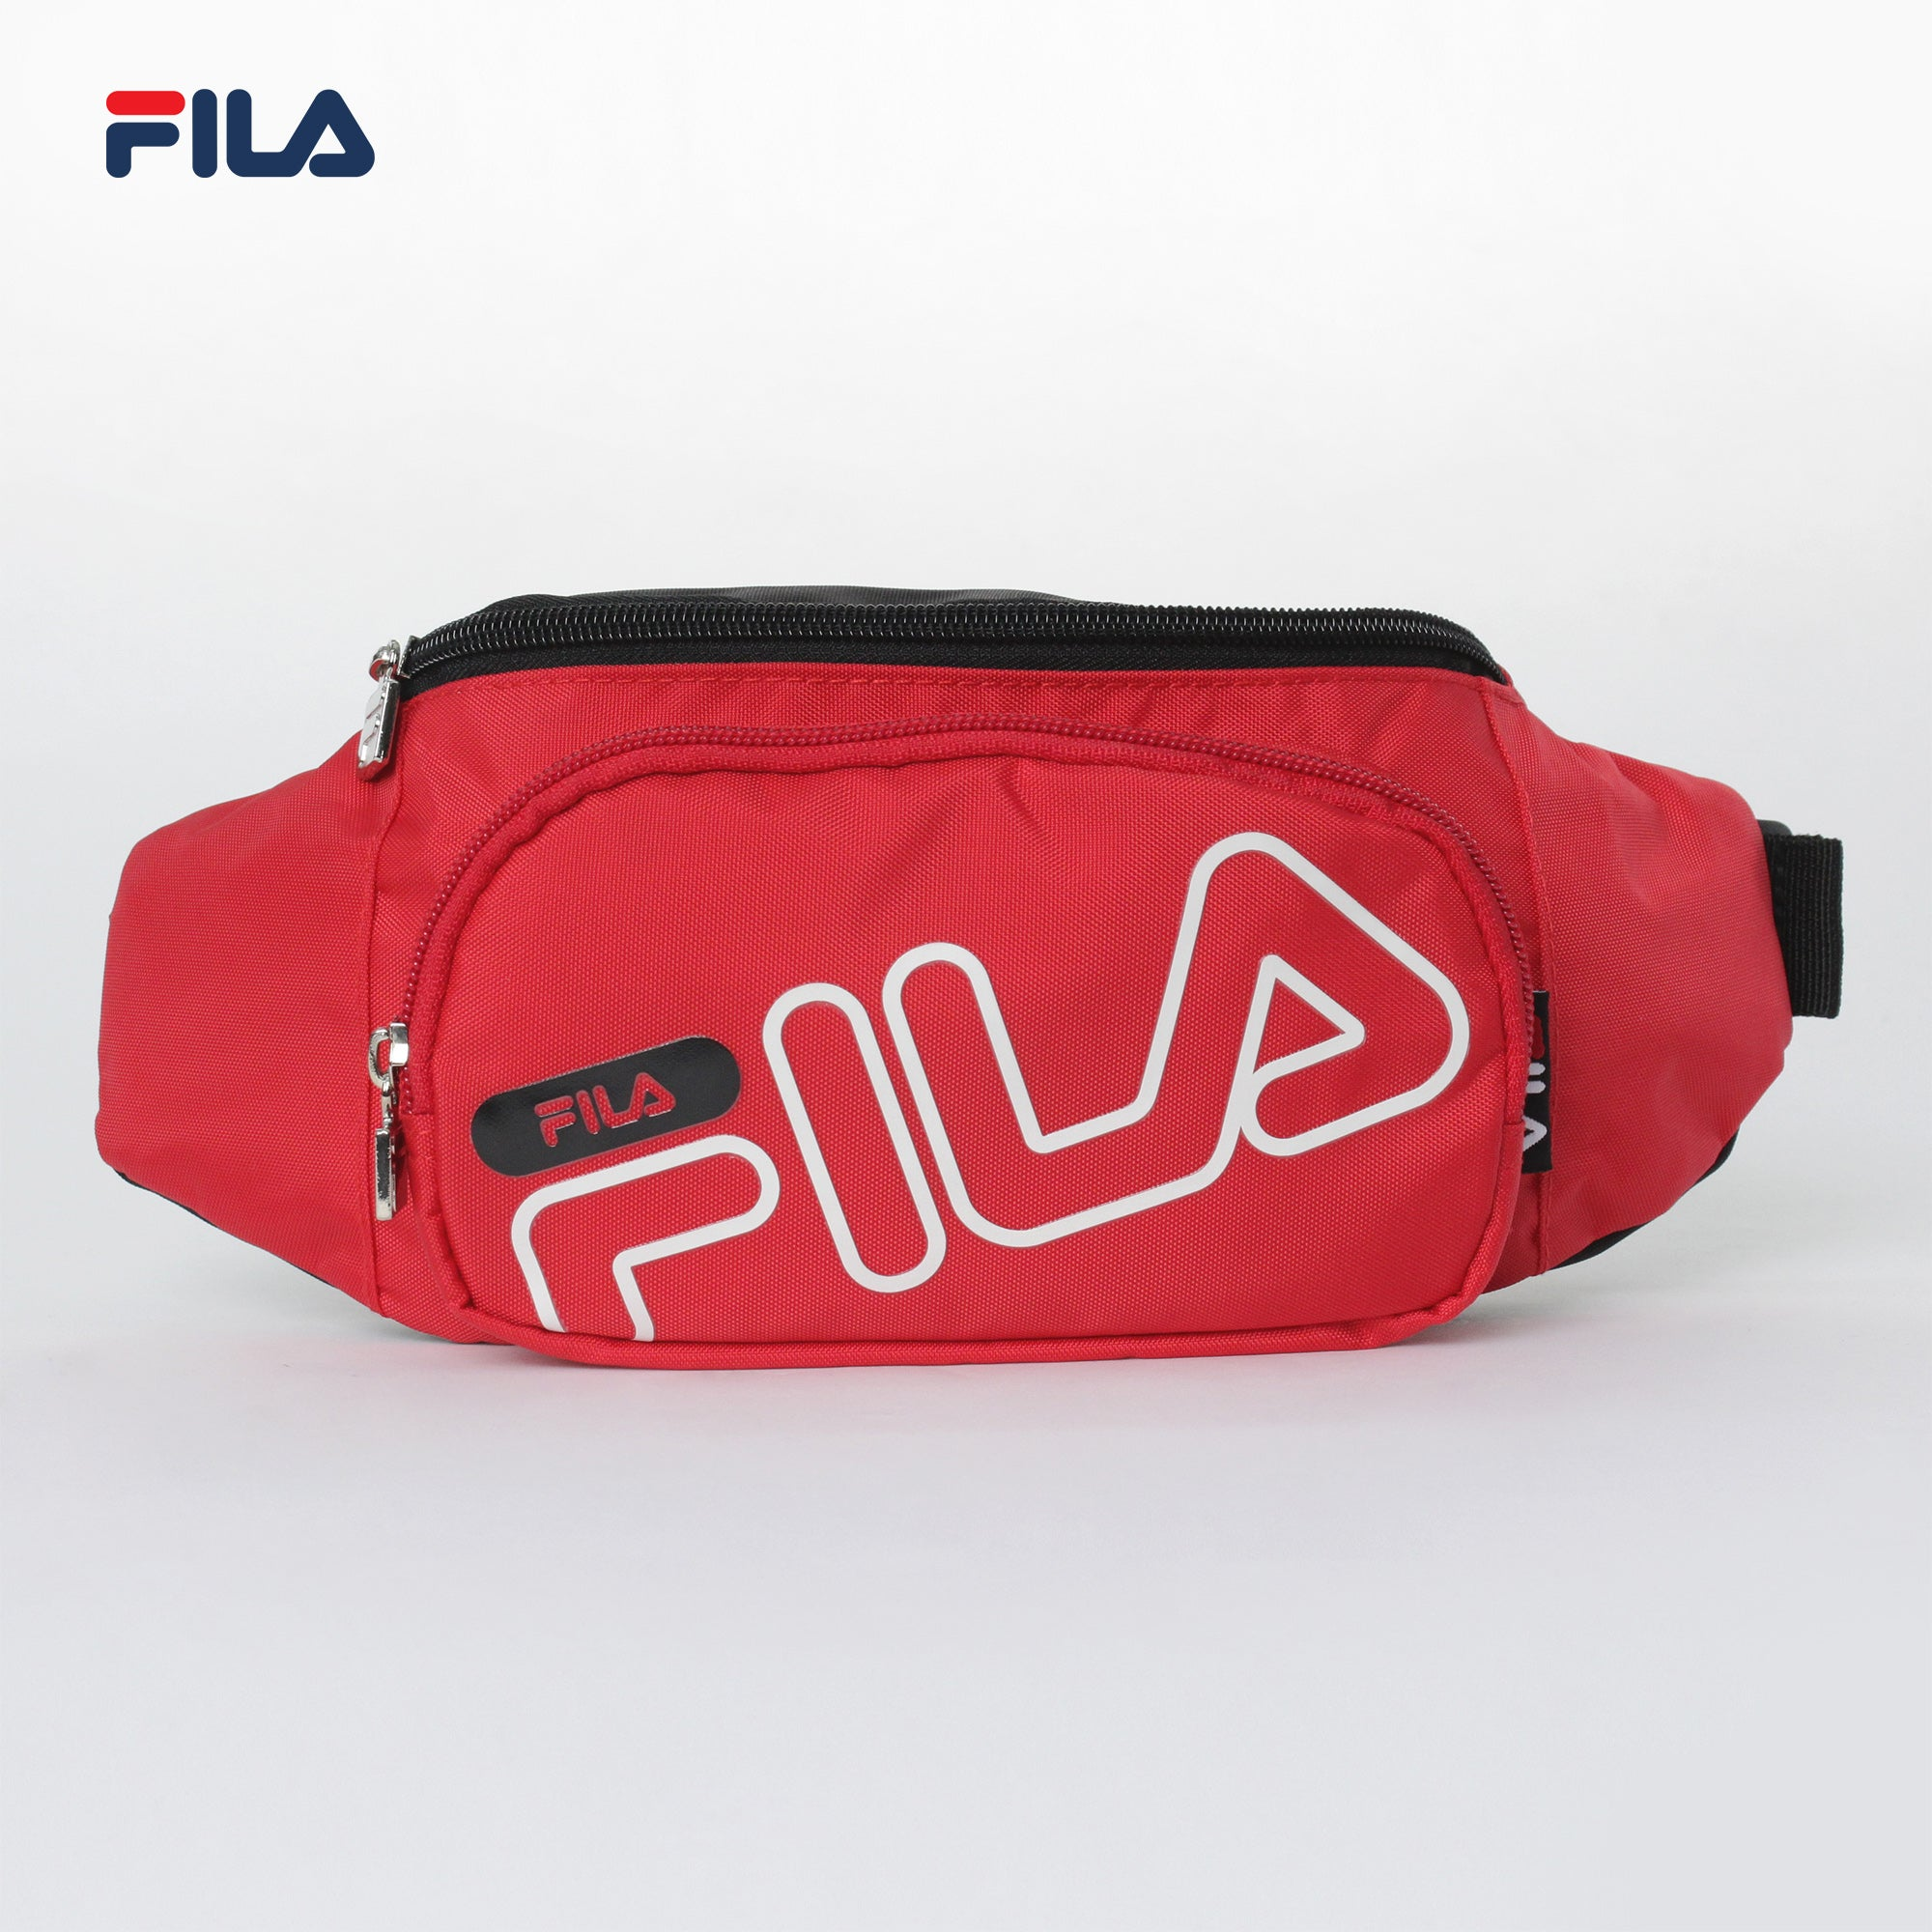 Fila Mythical Belt Bag